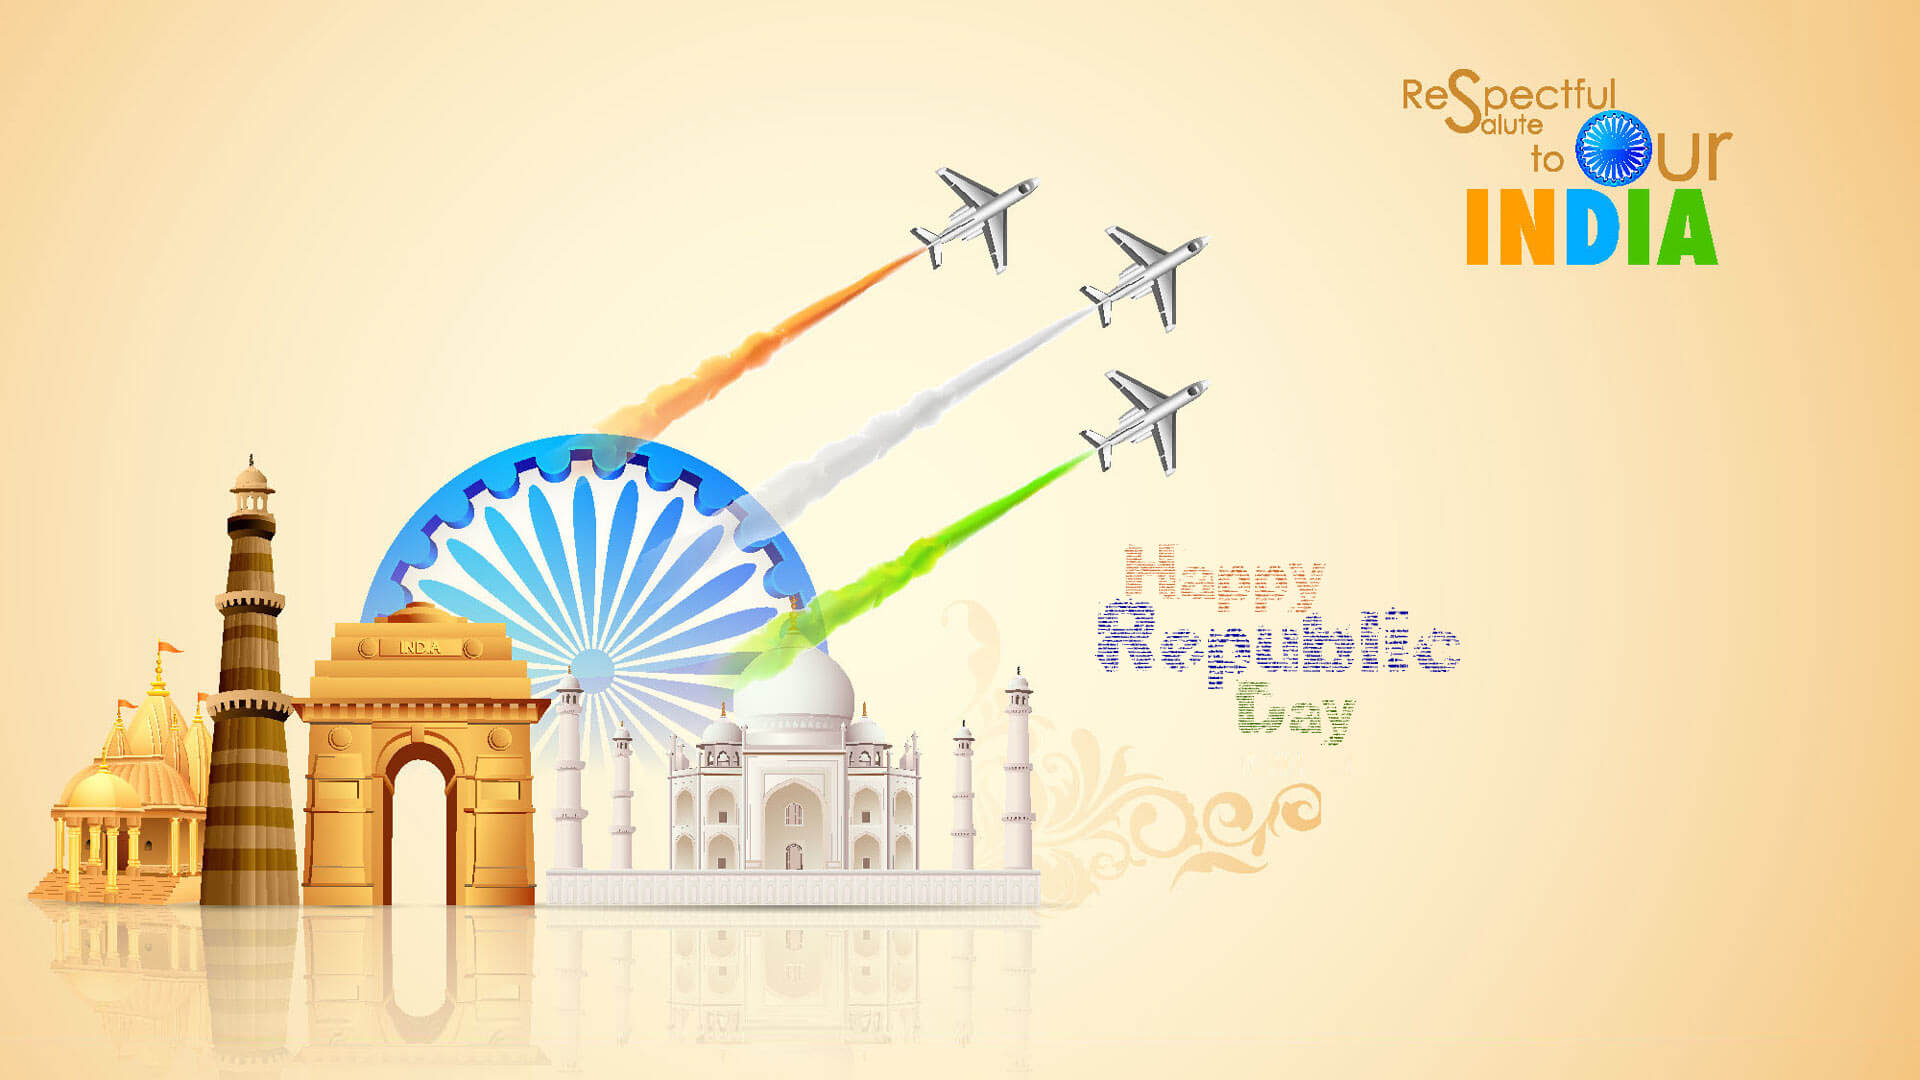 Wallpaper 26 January Republic Day